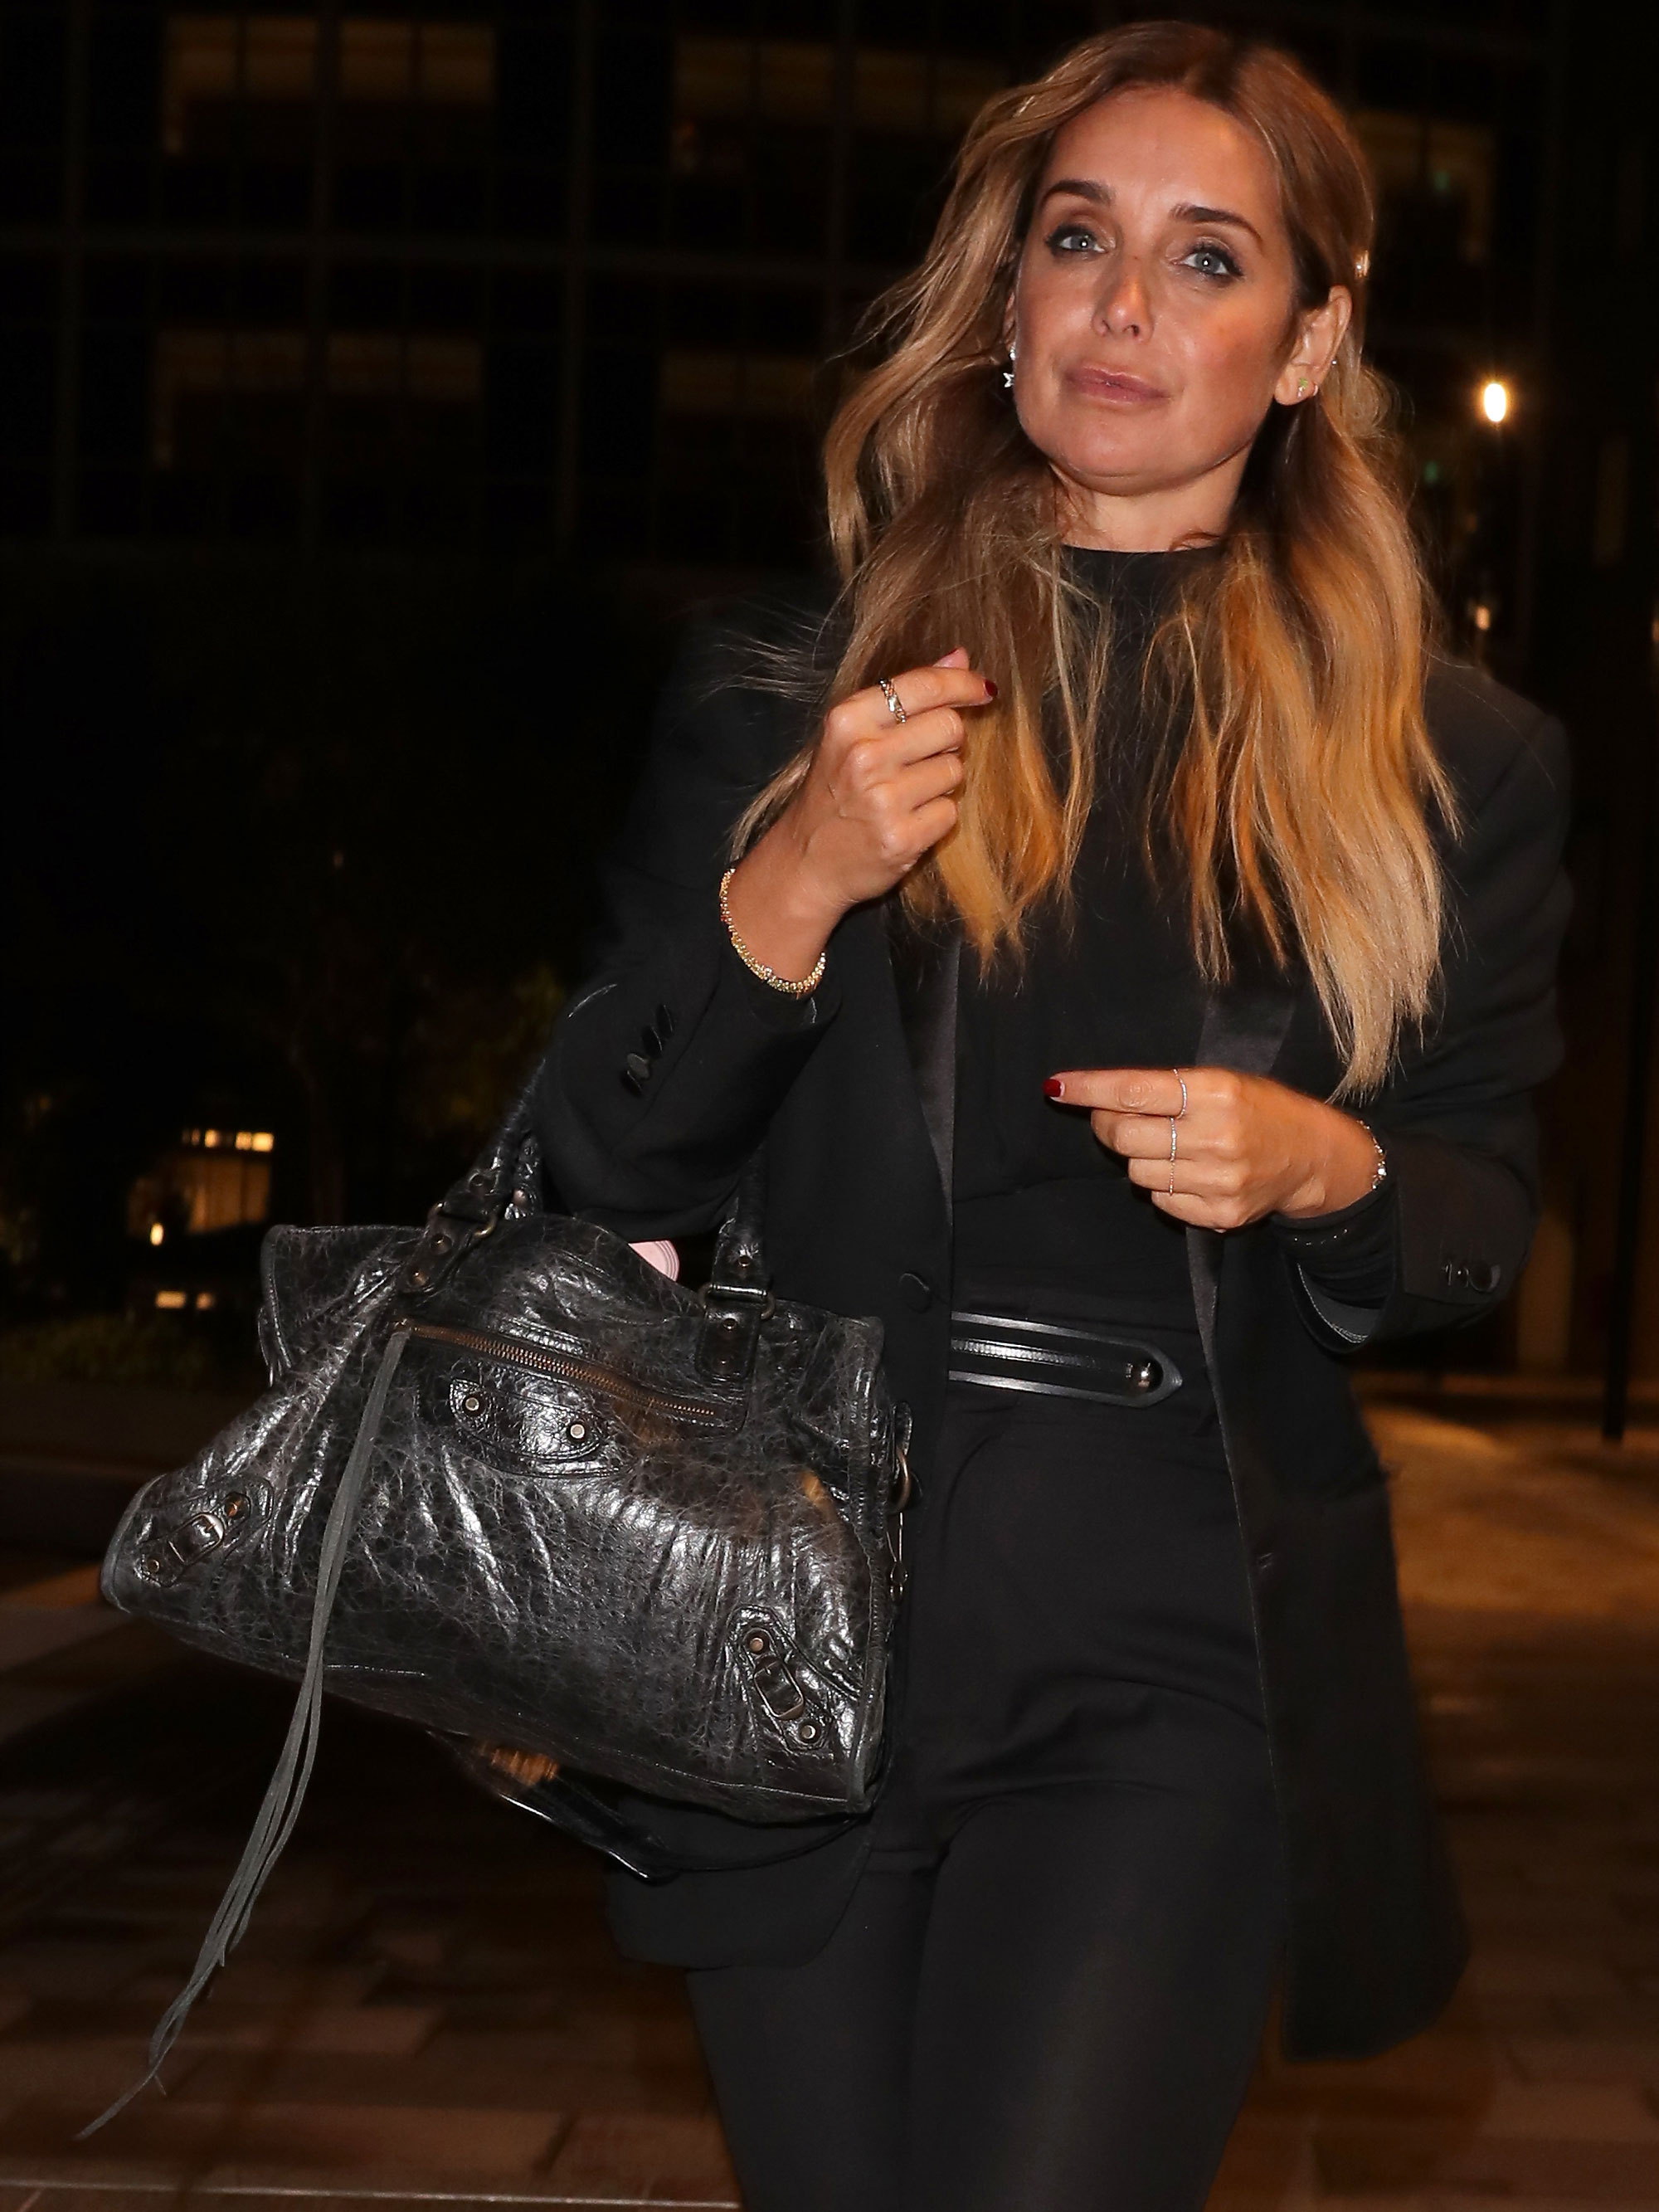 Louise Redknapp wows fans as she bares toned stomach in work out gear